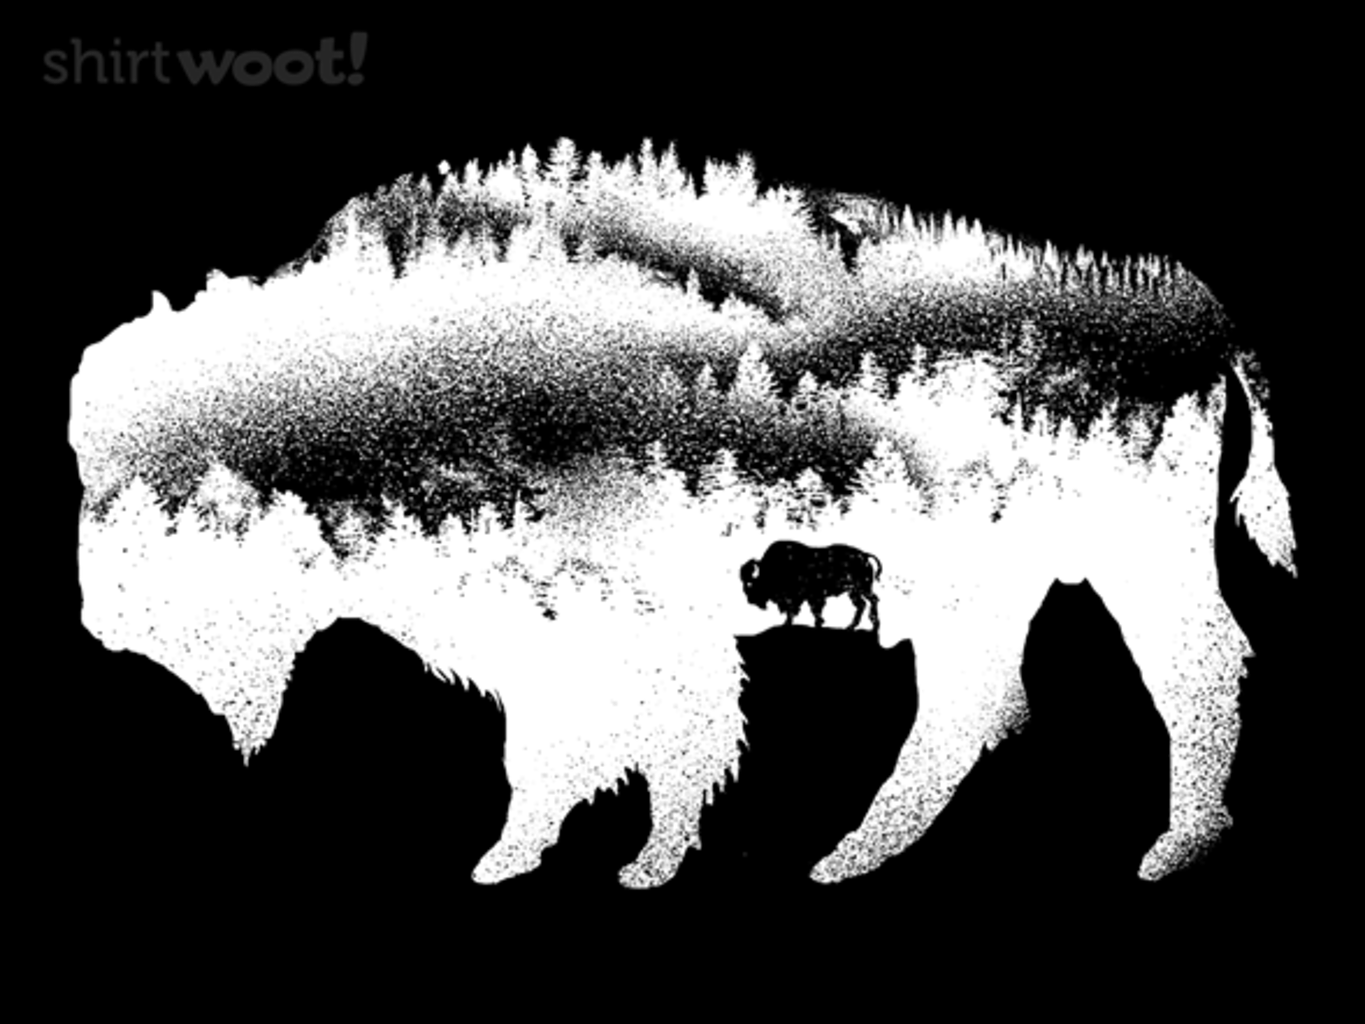 Woot!: Bison